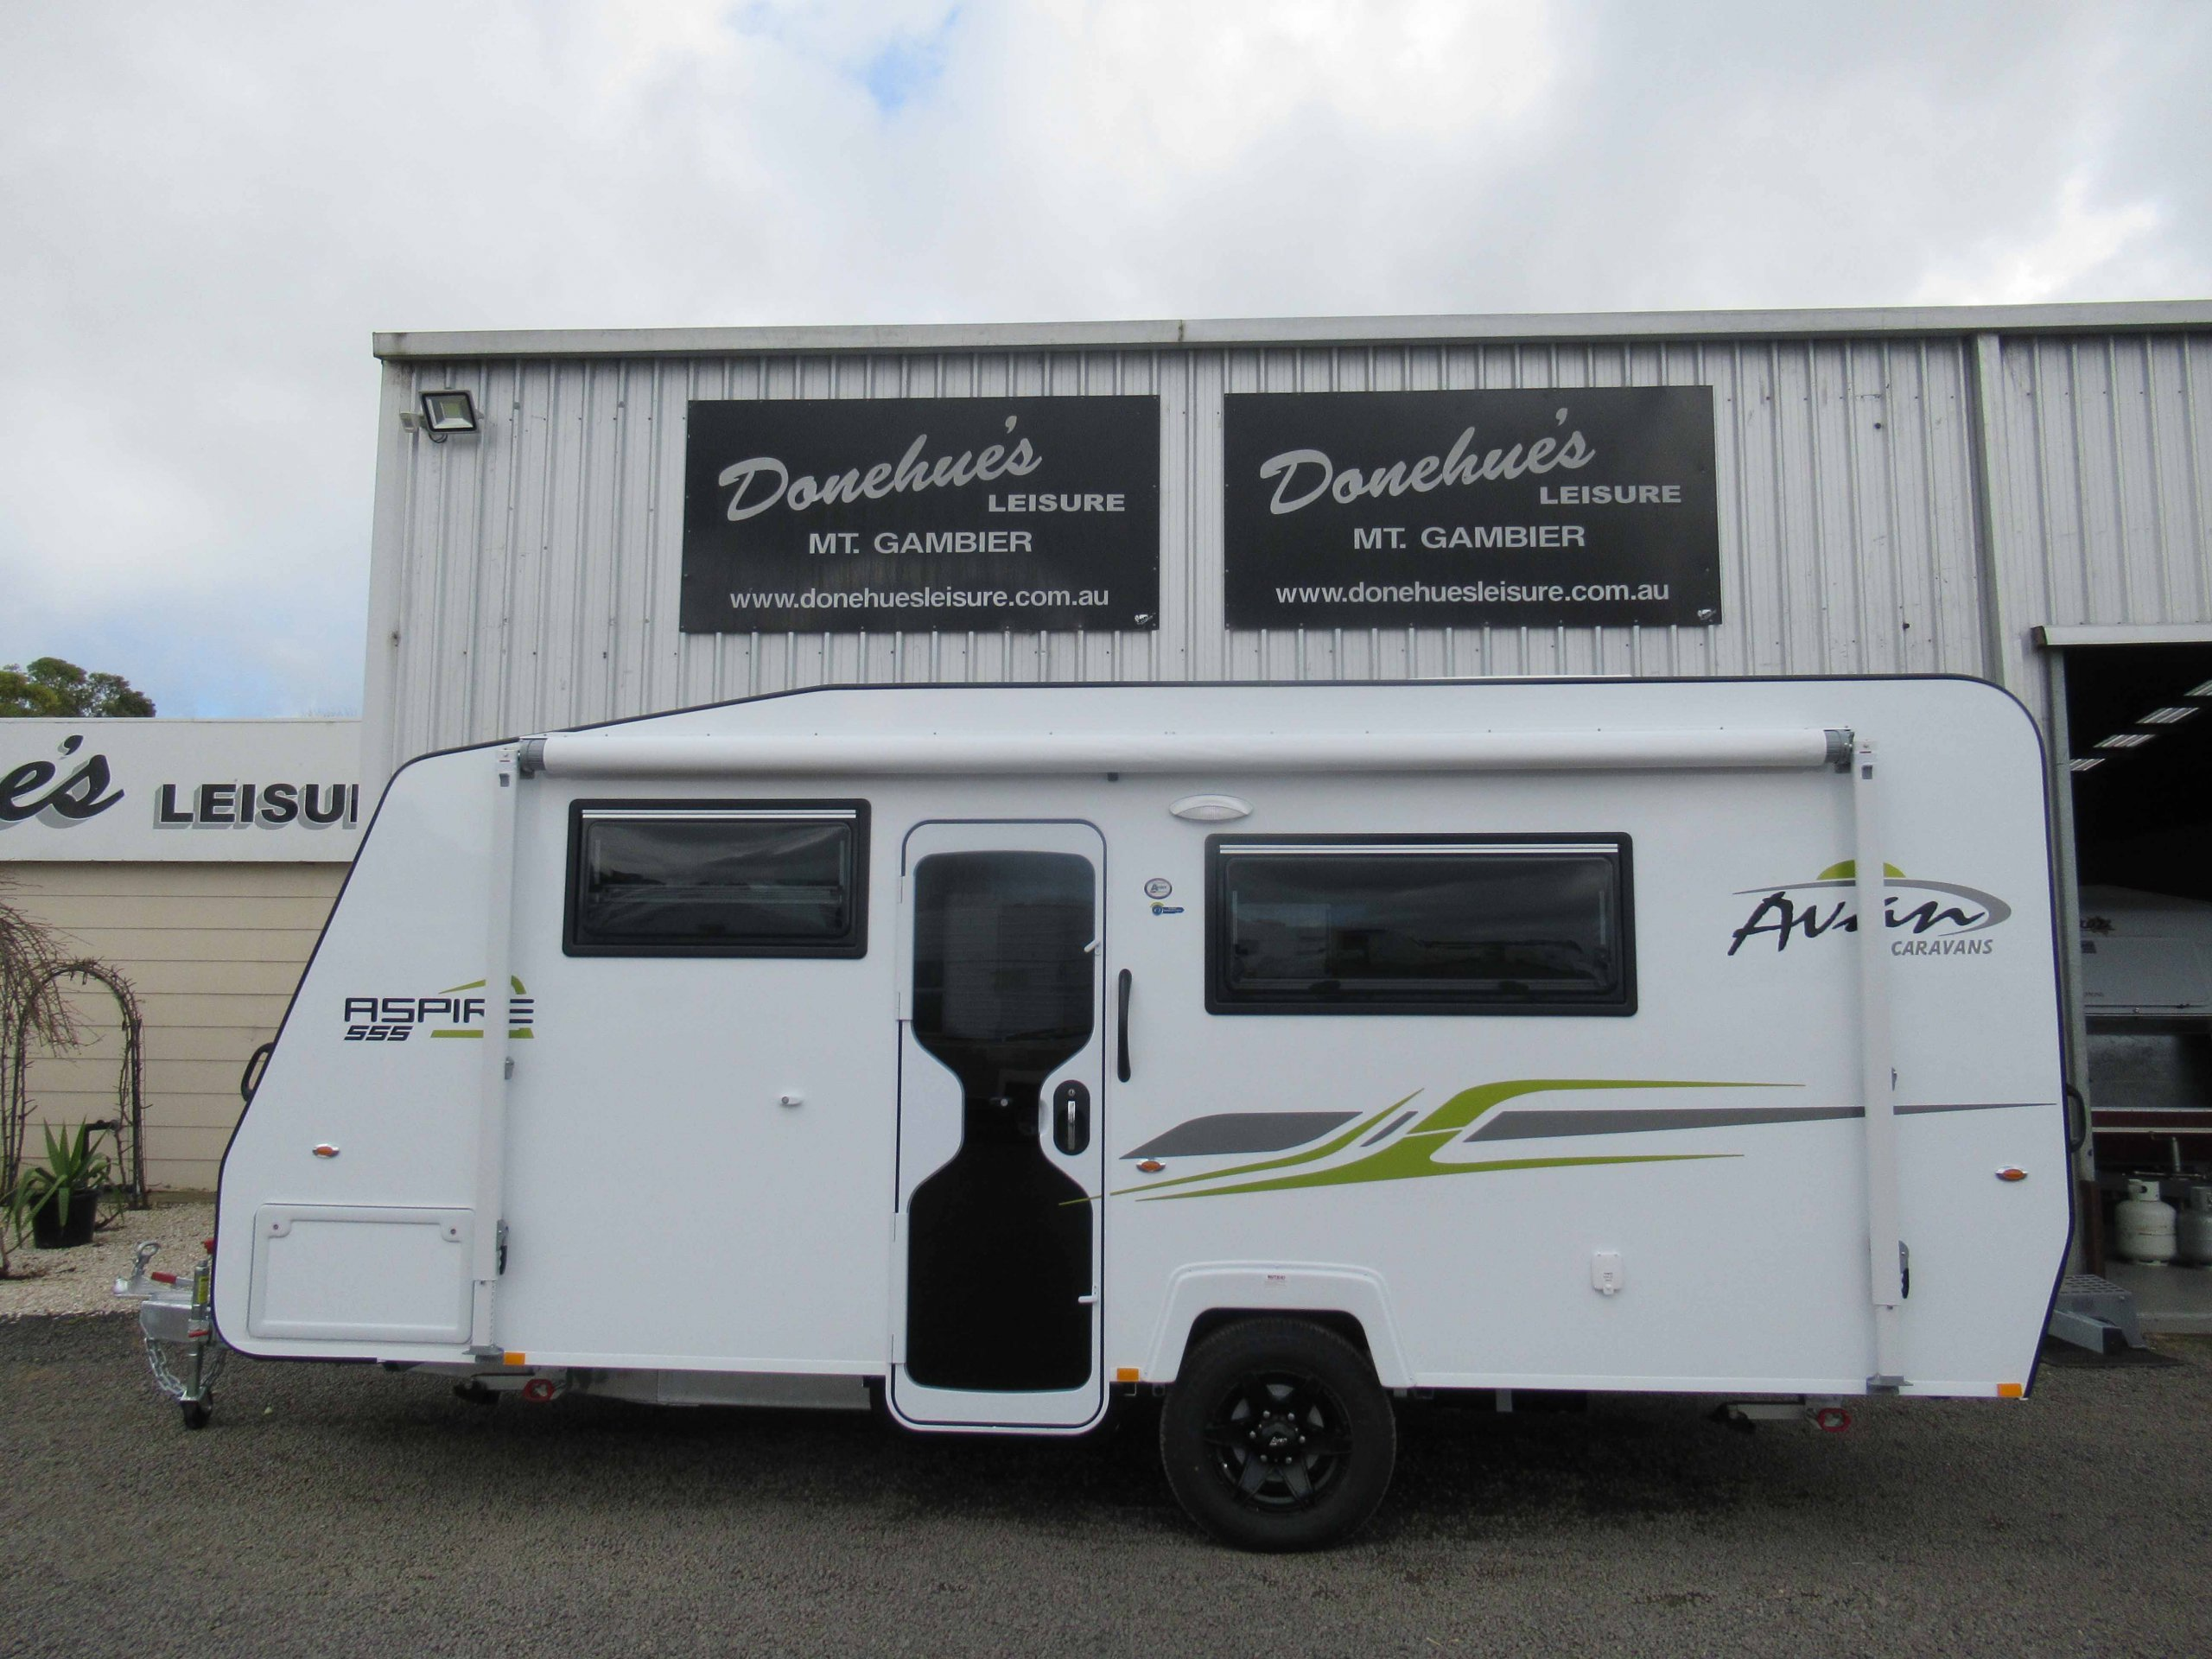 Donehues Leisure New Avan 555 Aspire Caravan Mt Gambier 12424